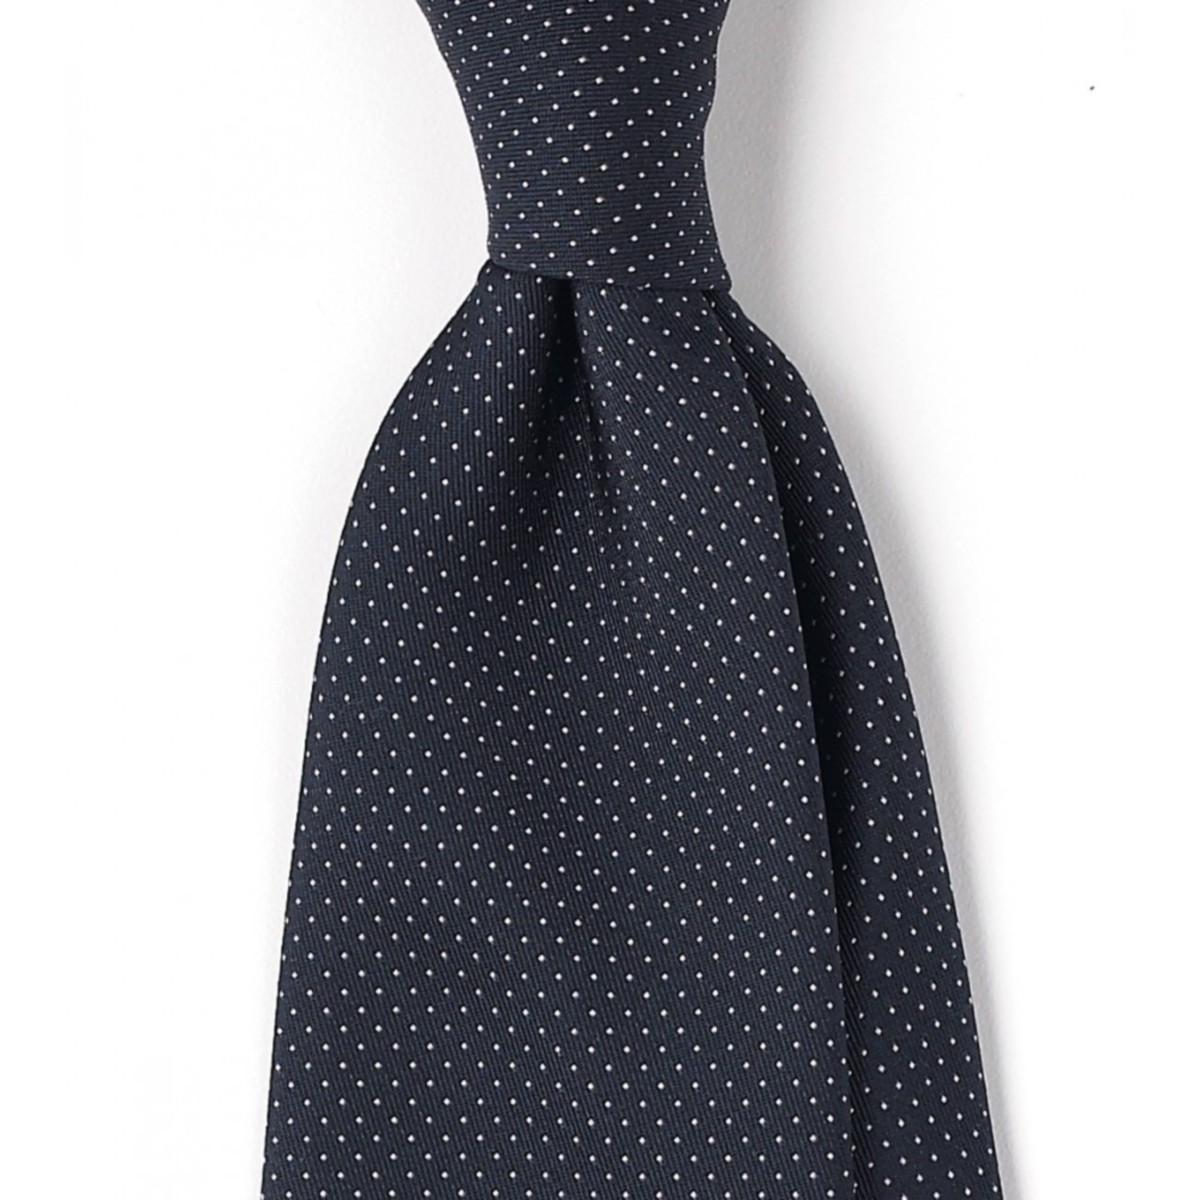 A gorgeous pin dot tie.